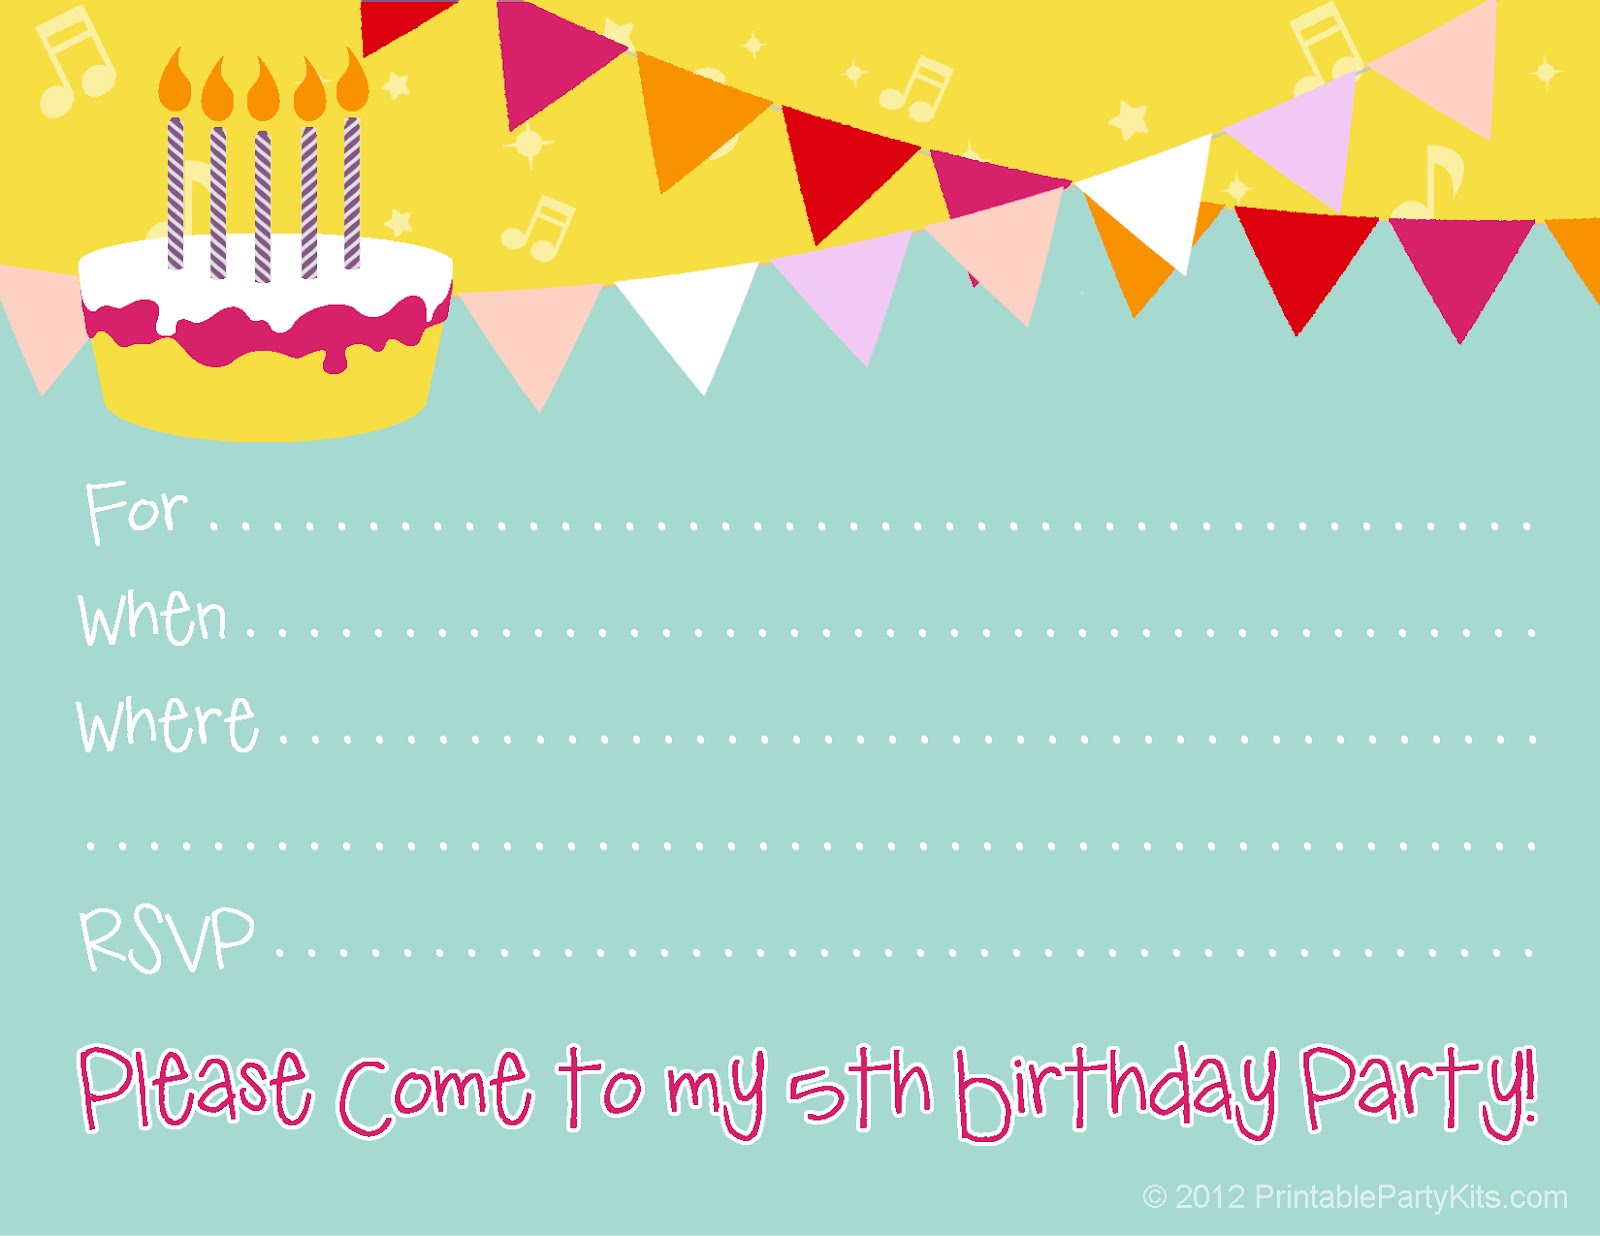 free birthday party invitation templates with photo ; Birthday-Party-Invitation-Templates-Free-Download-to-get-ideas-how-to-make-your-own-birthday-Invitation-design-1